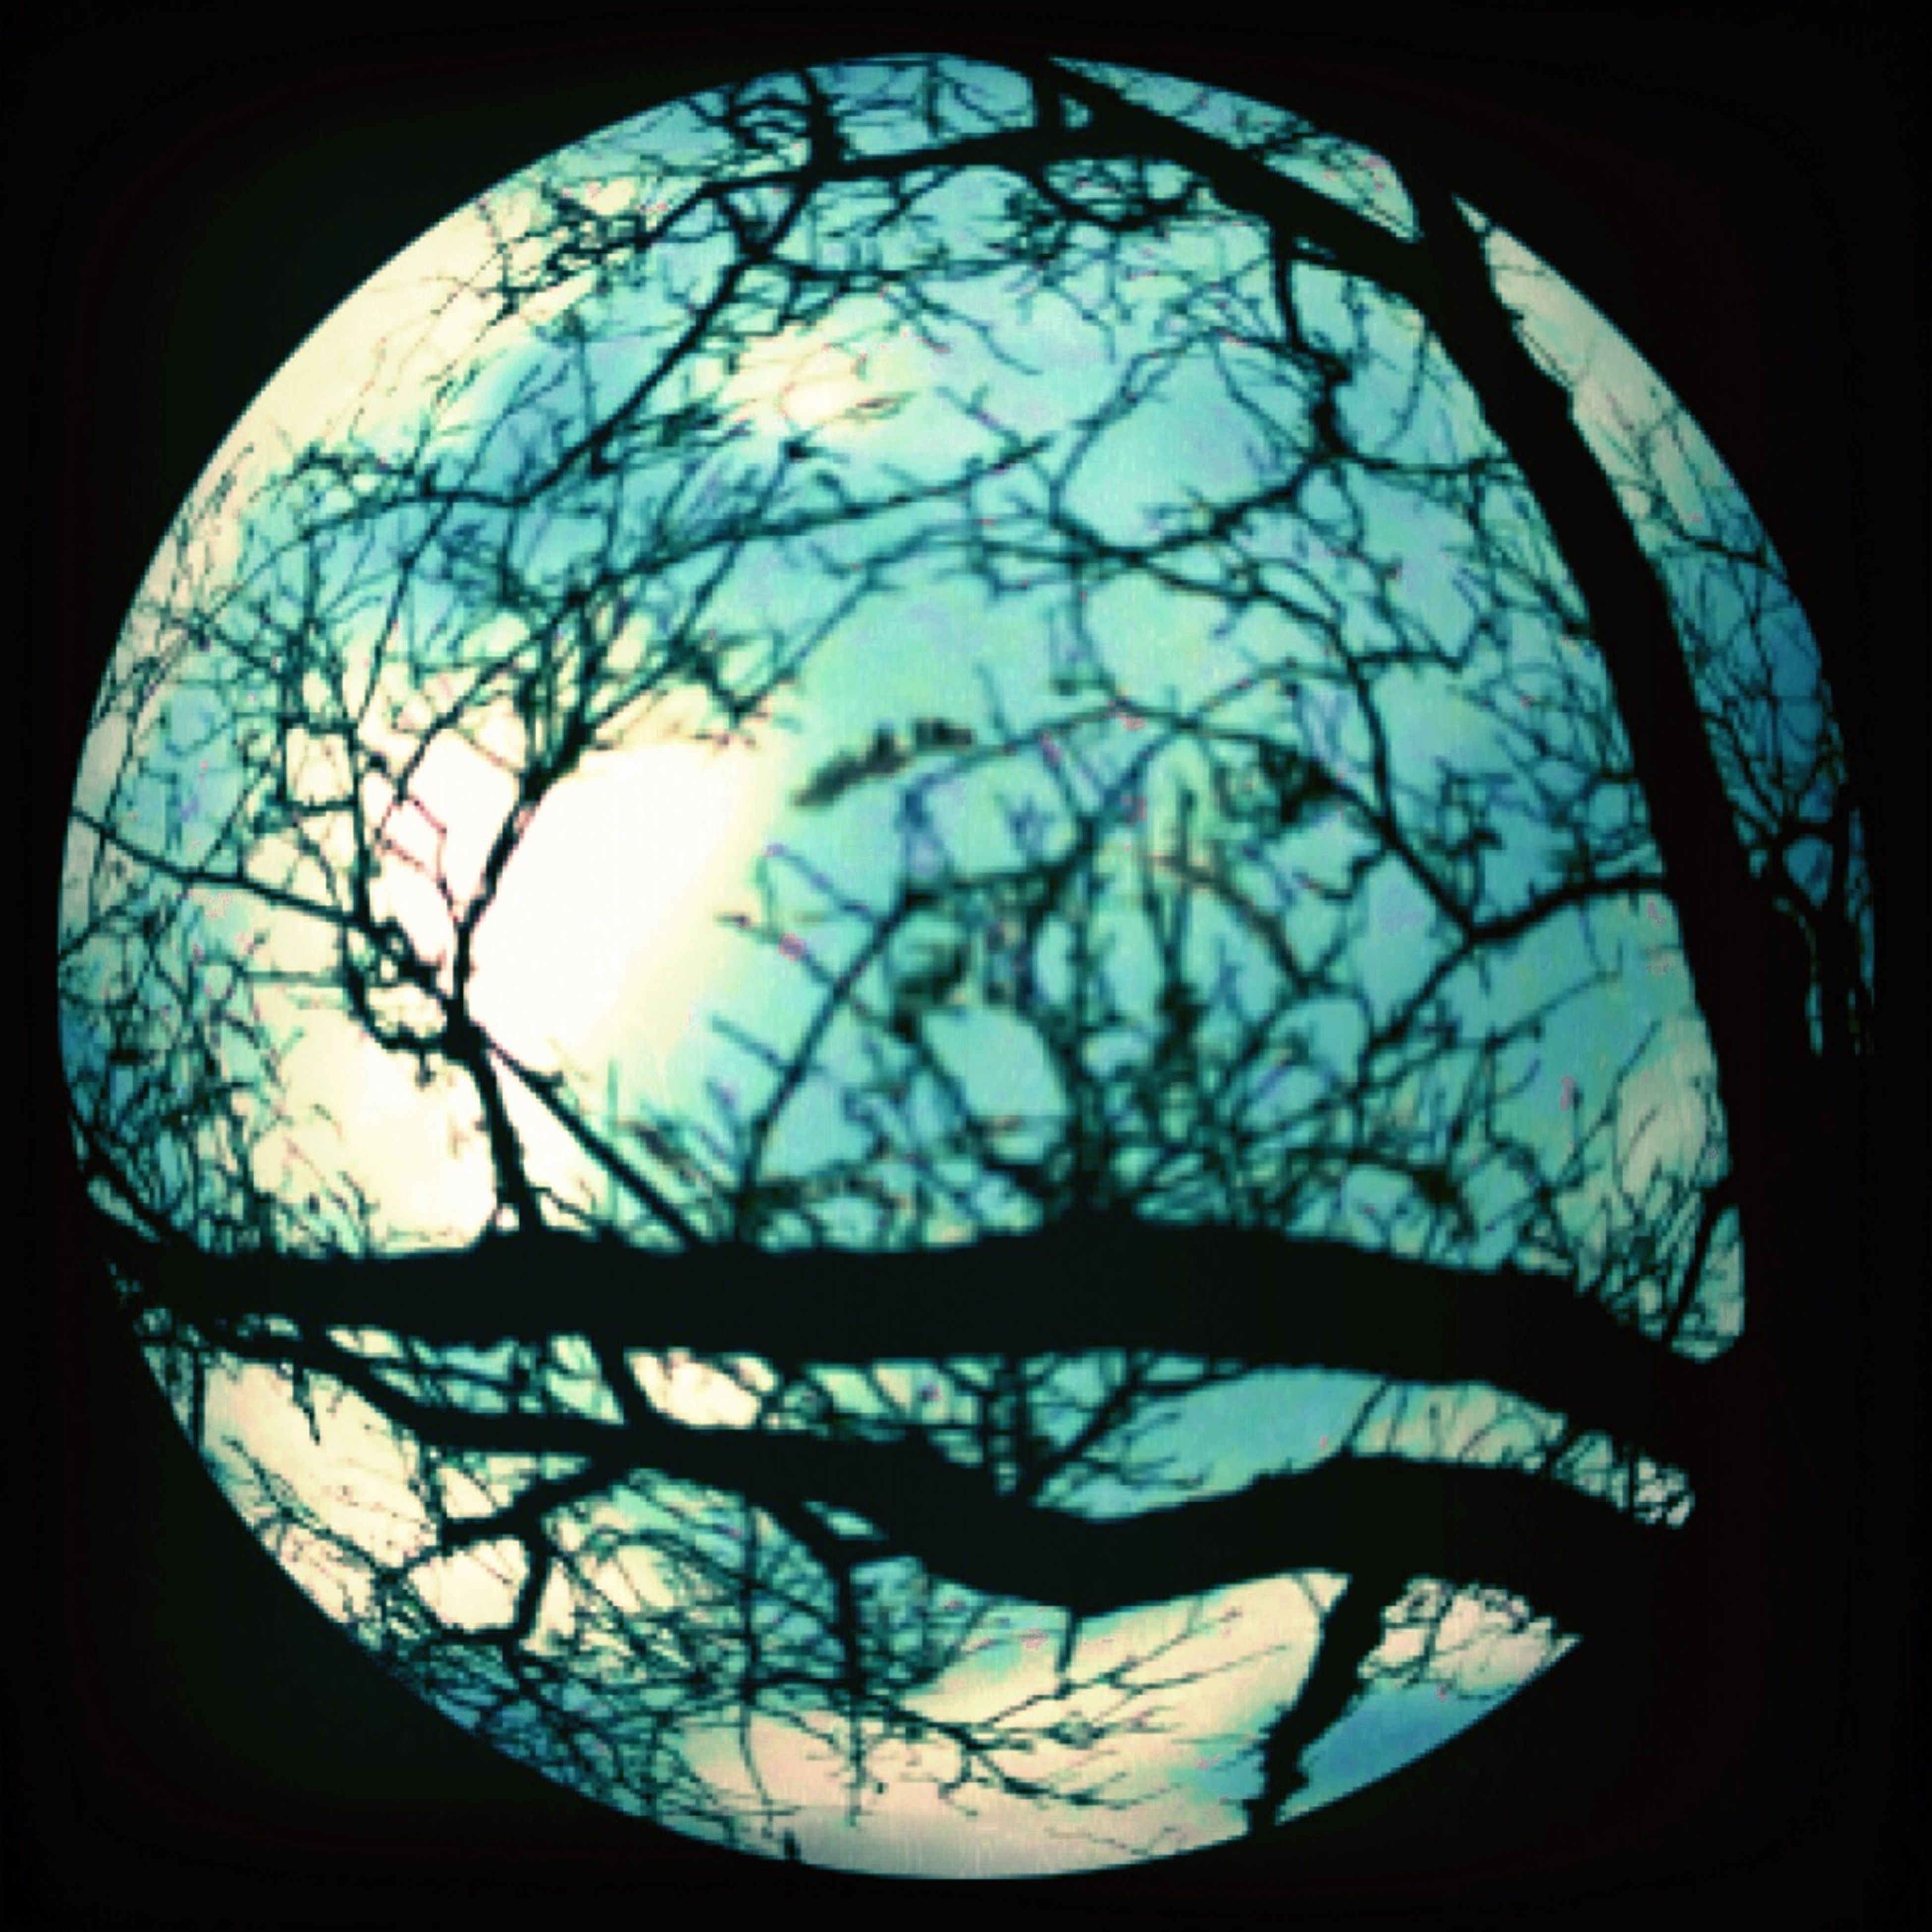 silhouette, sky, indoors, cloud - sky, sunset, window, low angle view, bare tree, circle, glass - material, transparent, tree, nature, sun, dusk, no people, tranquility, close-up, cloud, reflection